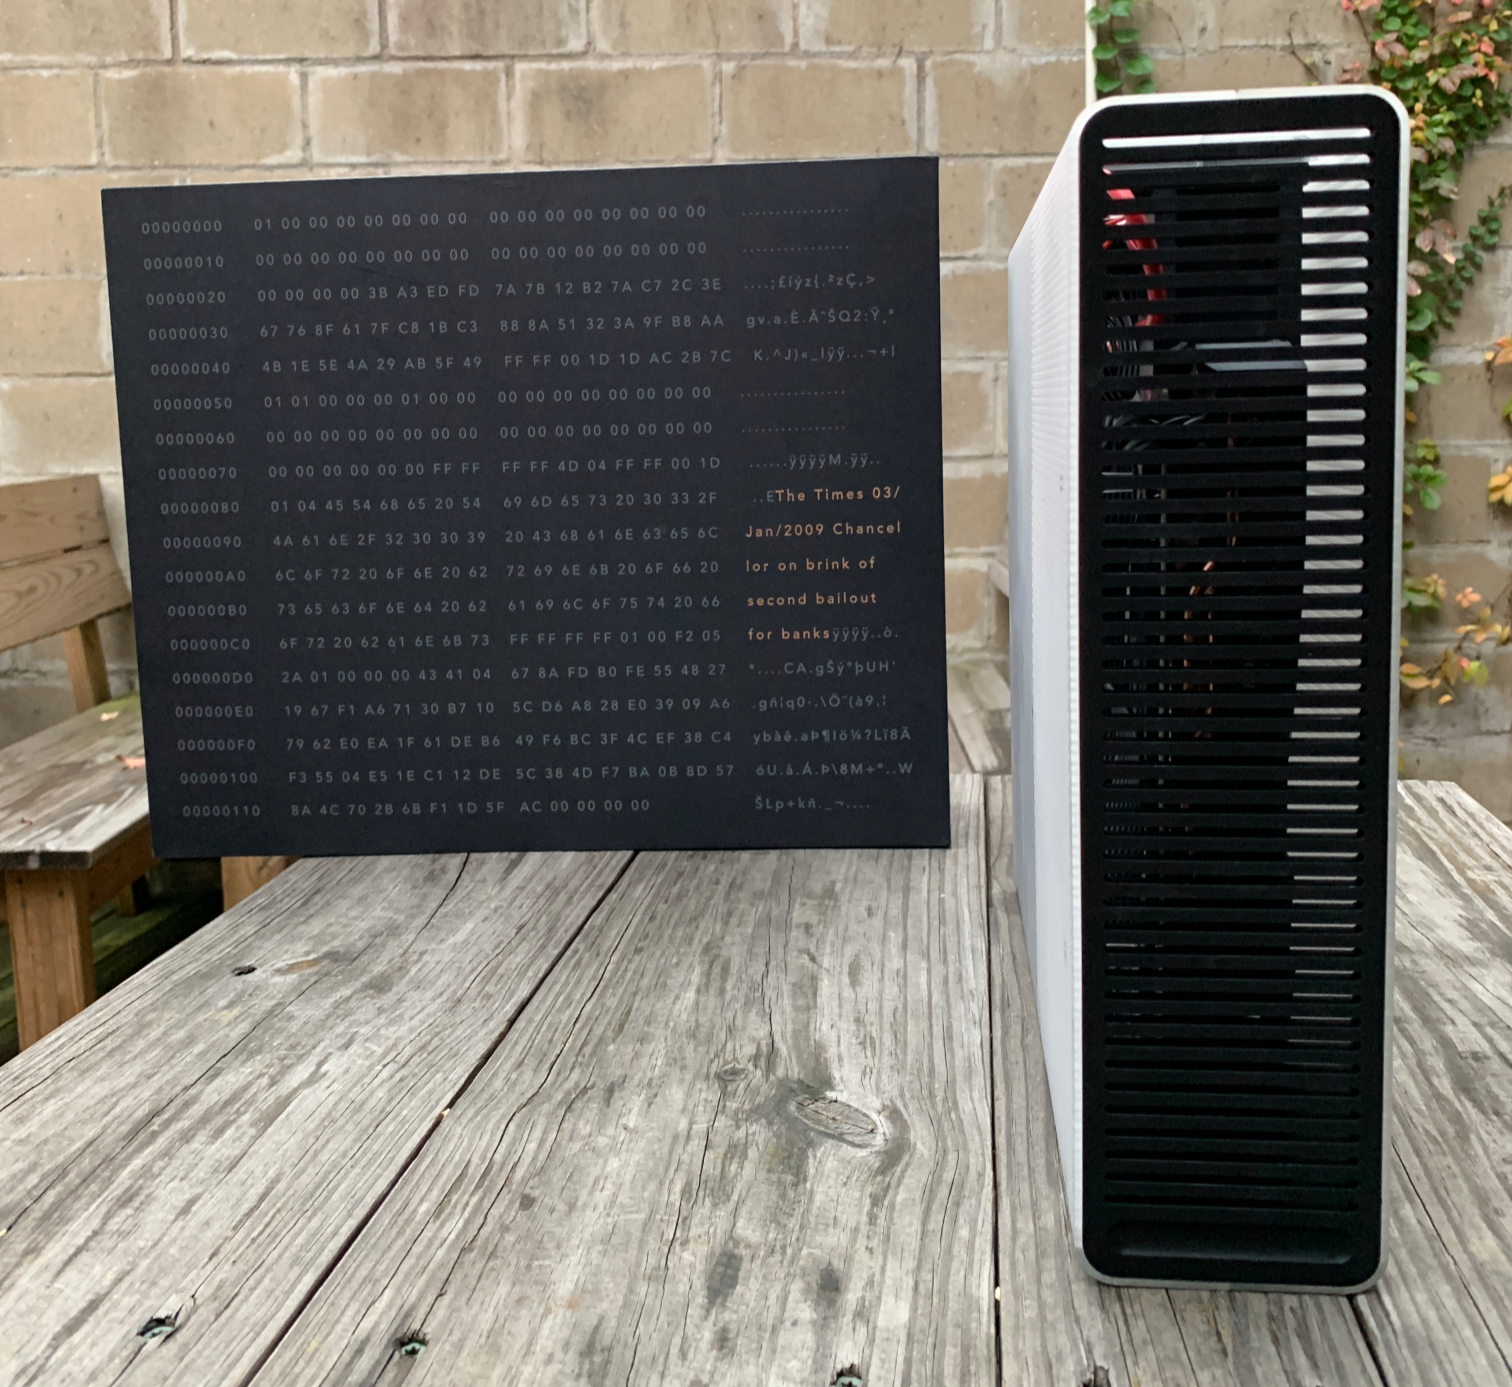 The Coinmine One is a box that mines crypto at home